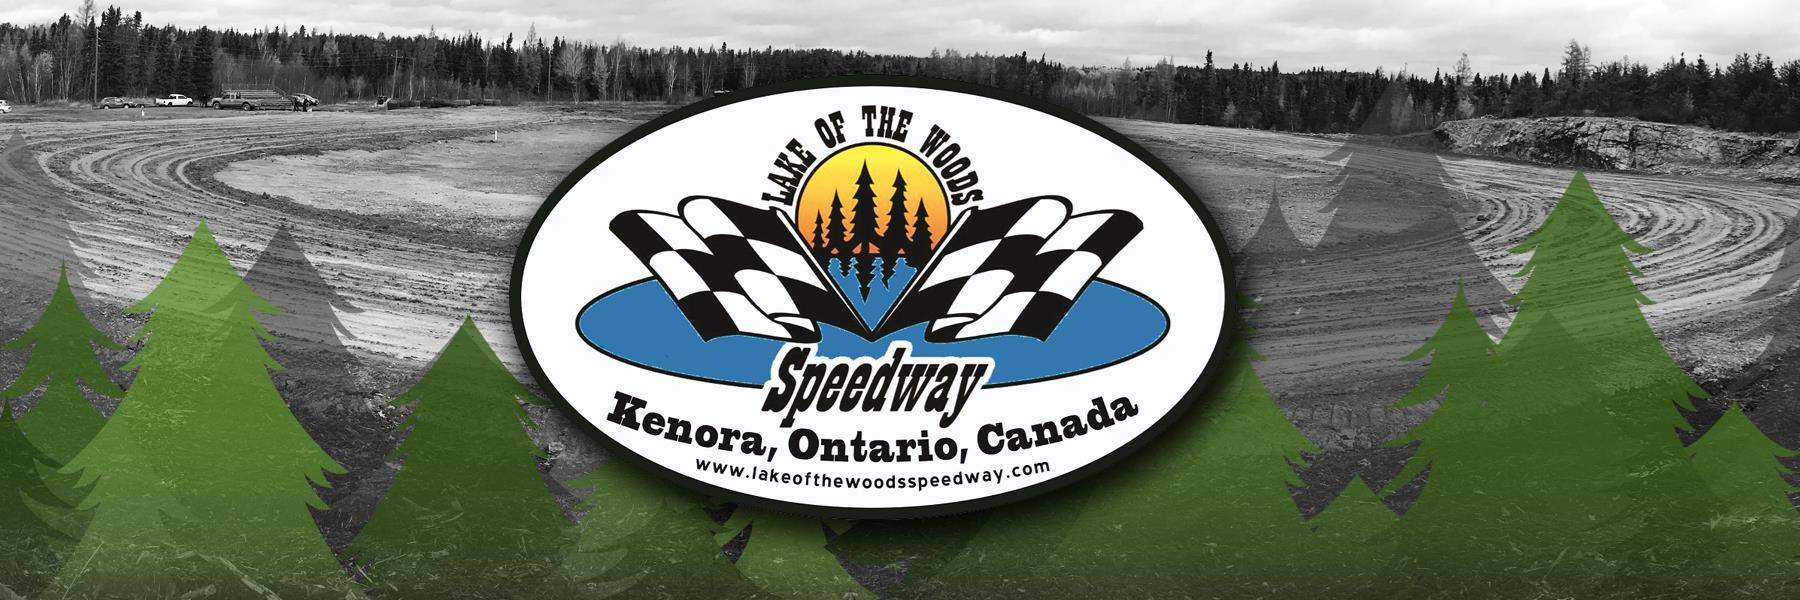 Lake of the Woods Speedway